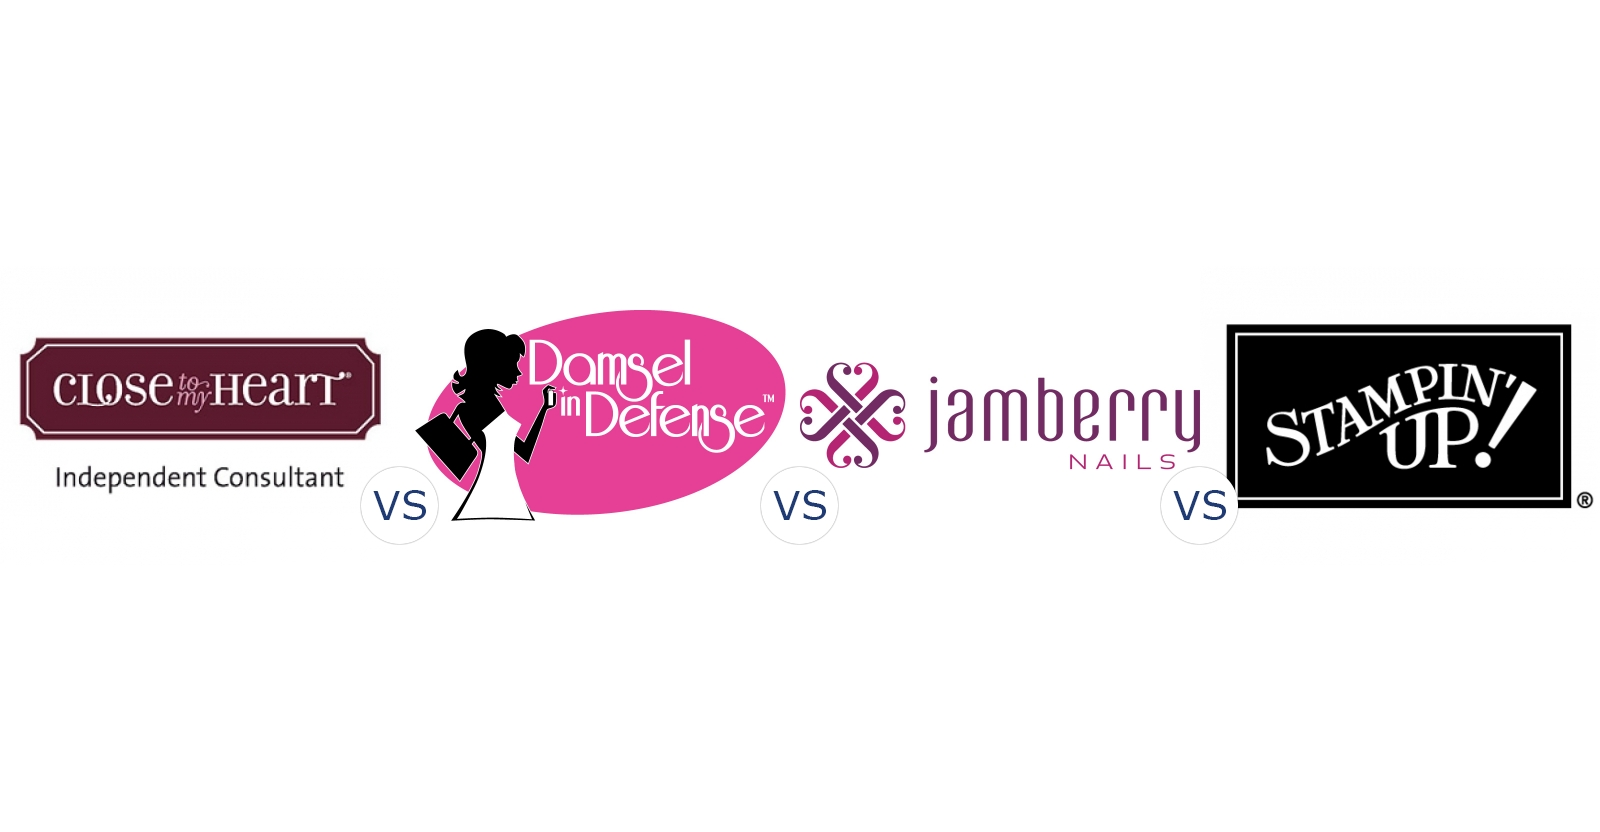 Close to My Heart vs. Damsel In Defense vs. Jamberry Nails vs. Stampin Up